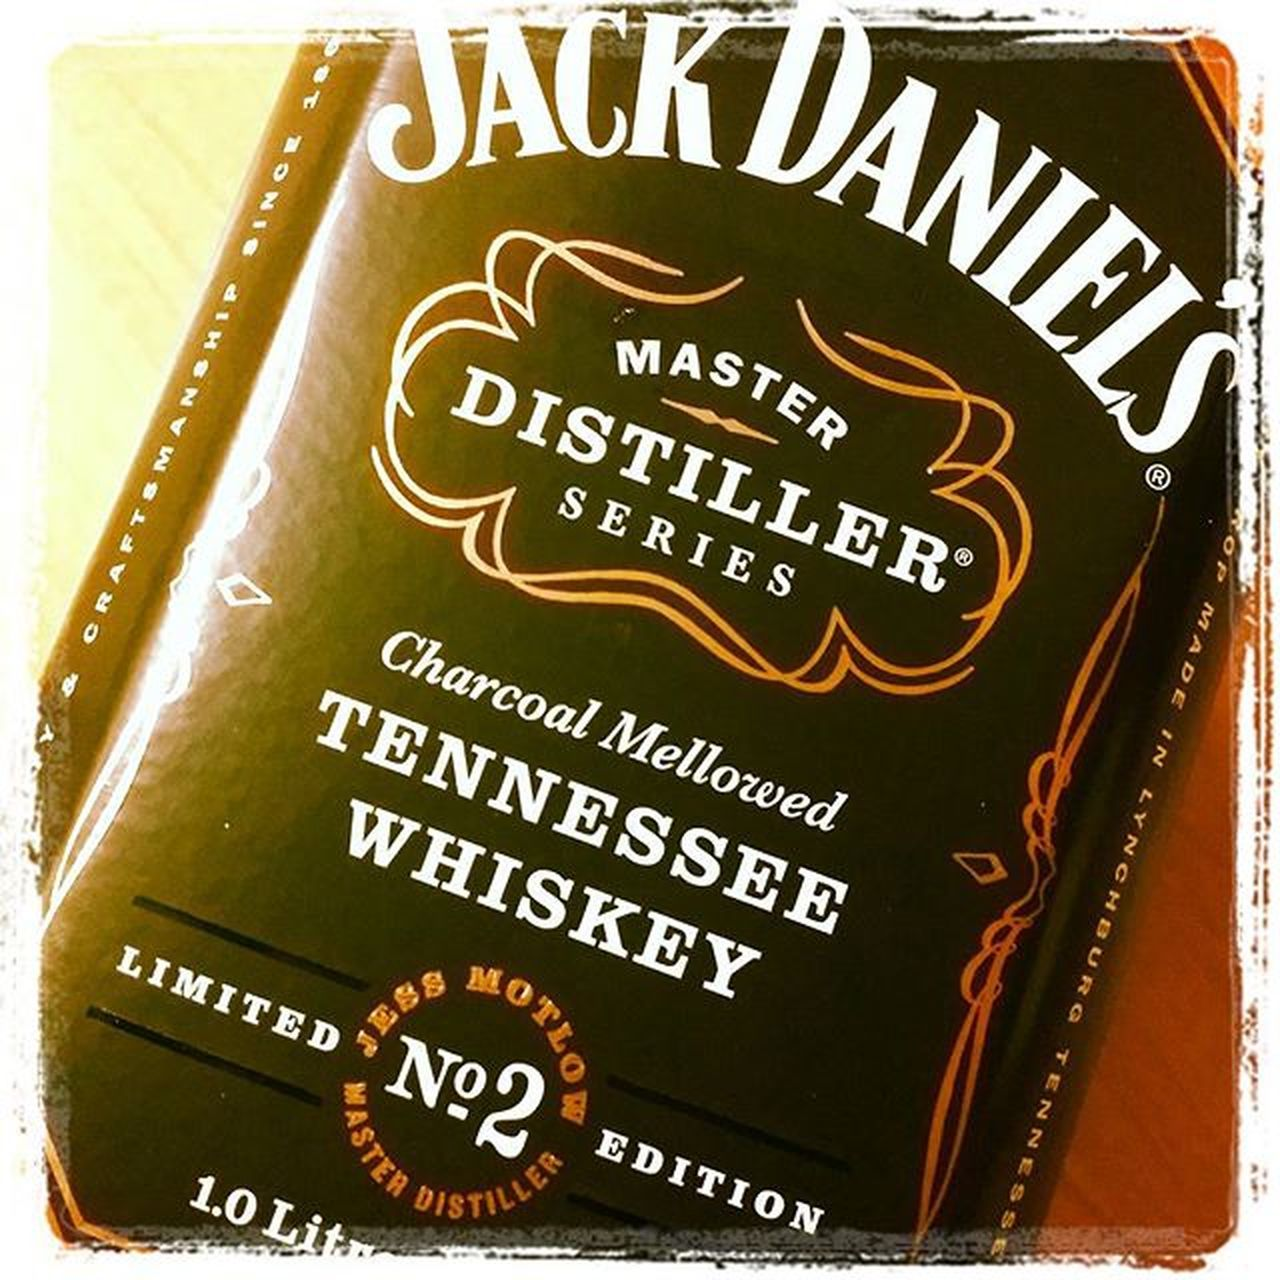 Trying to beat a cold the best way. Jack Daniels Tennessee Whiskey Jackdaniels JD Alcohol Neat